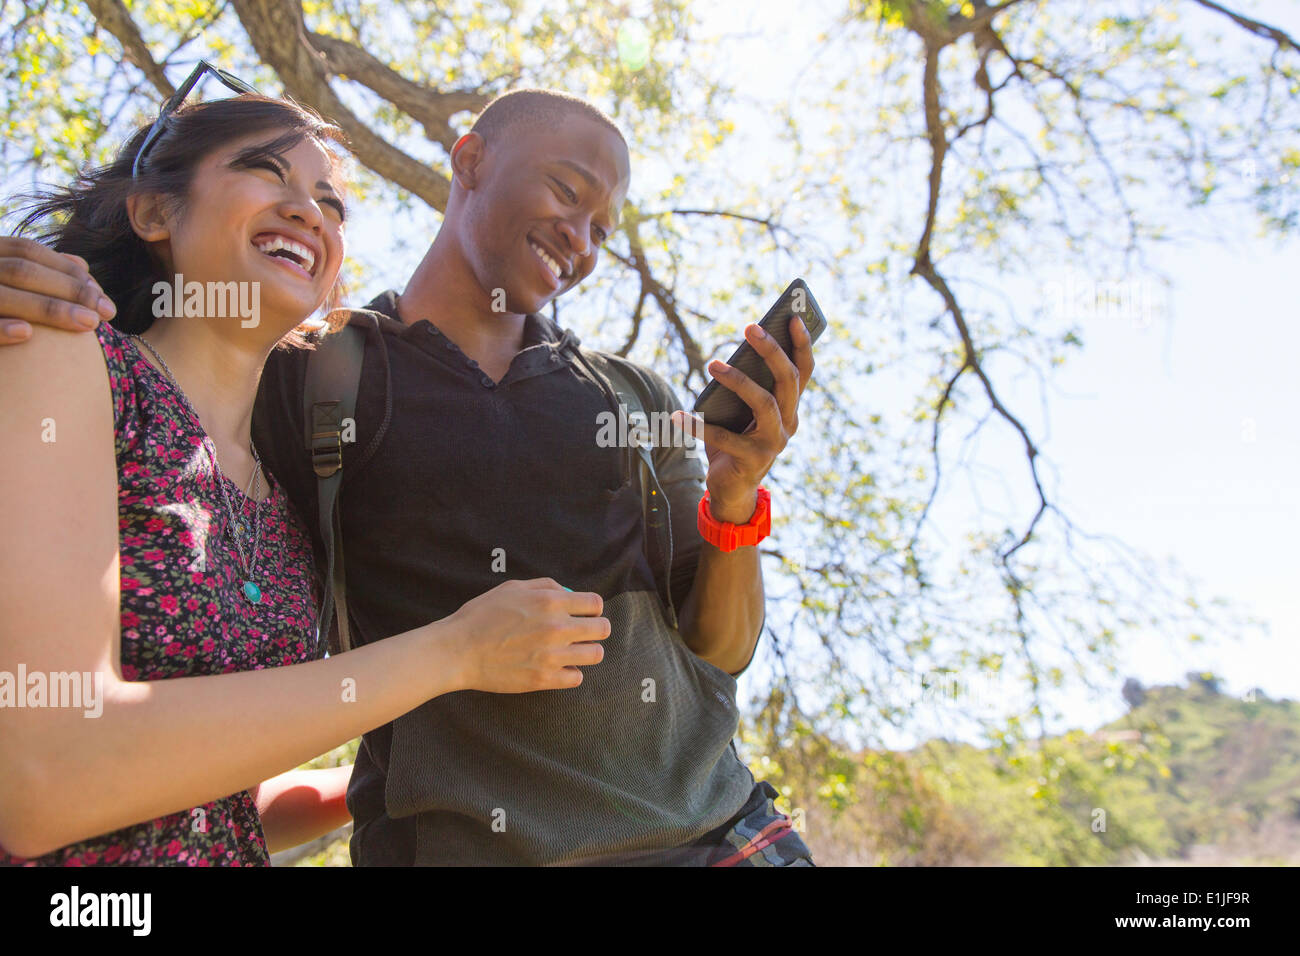 Young couple in park checking text messages - Stock Image